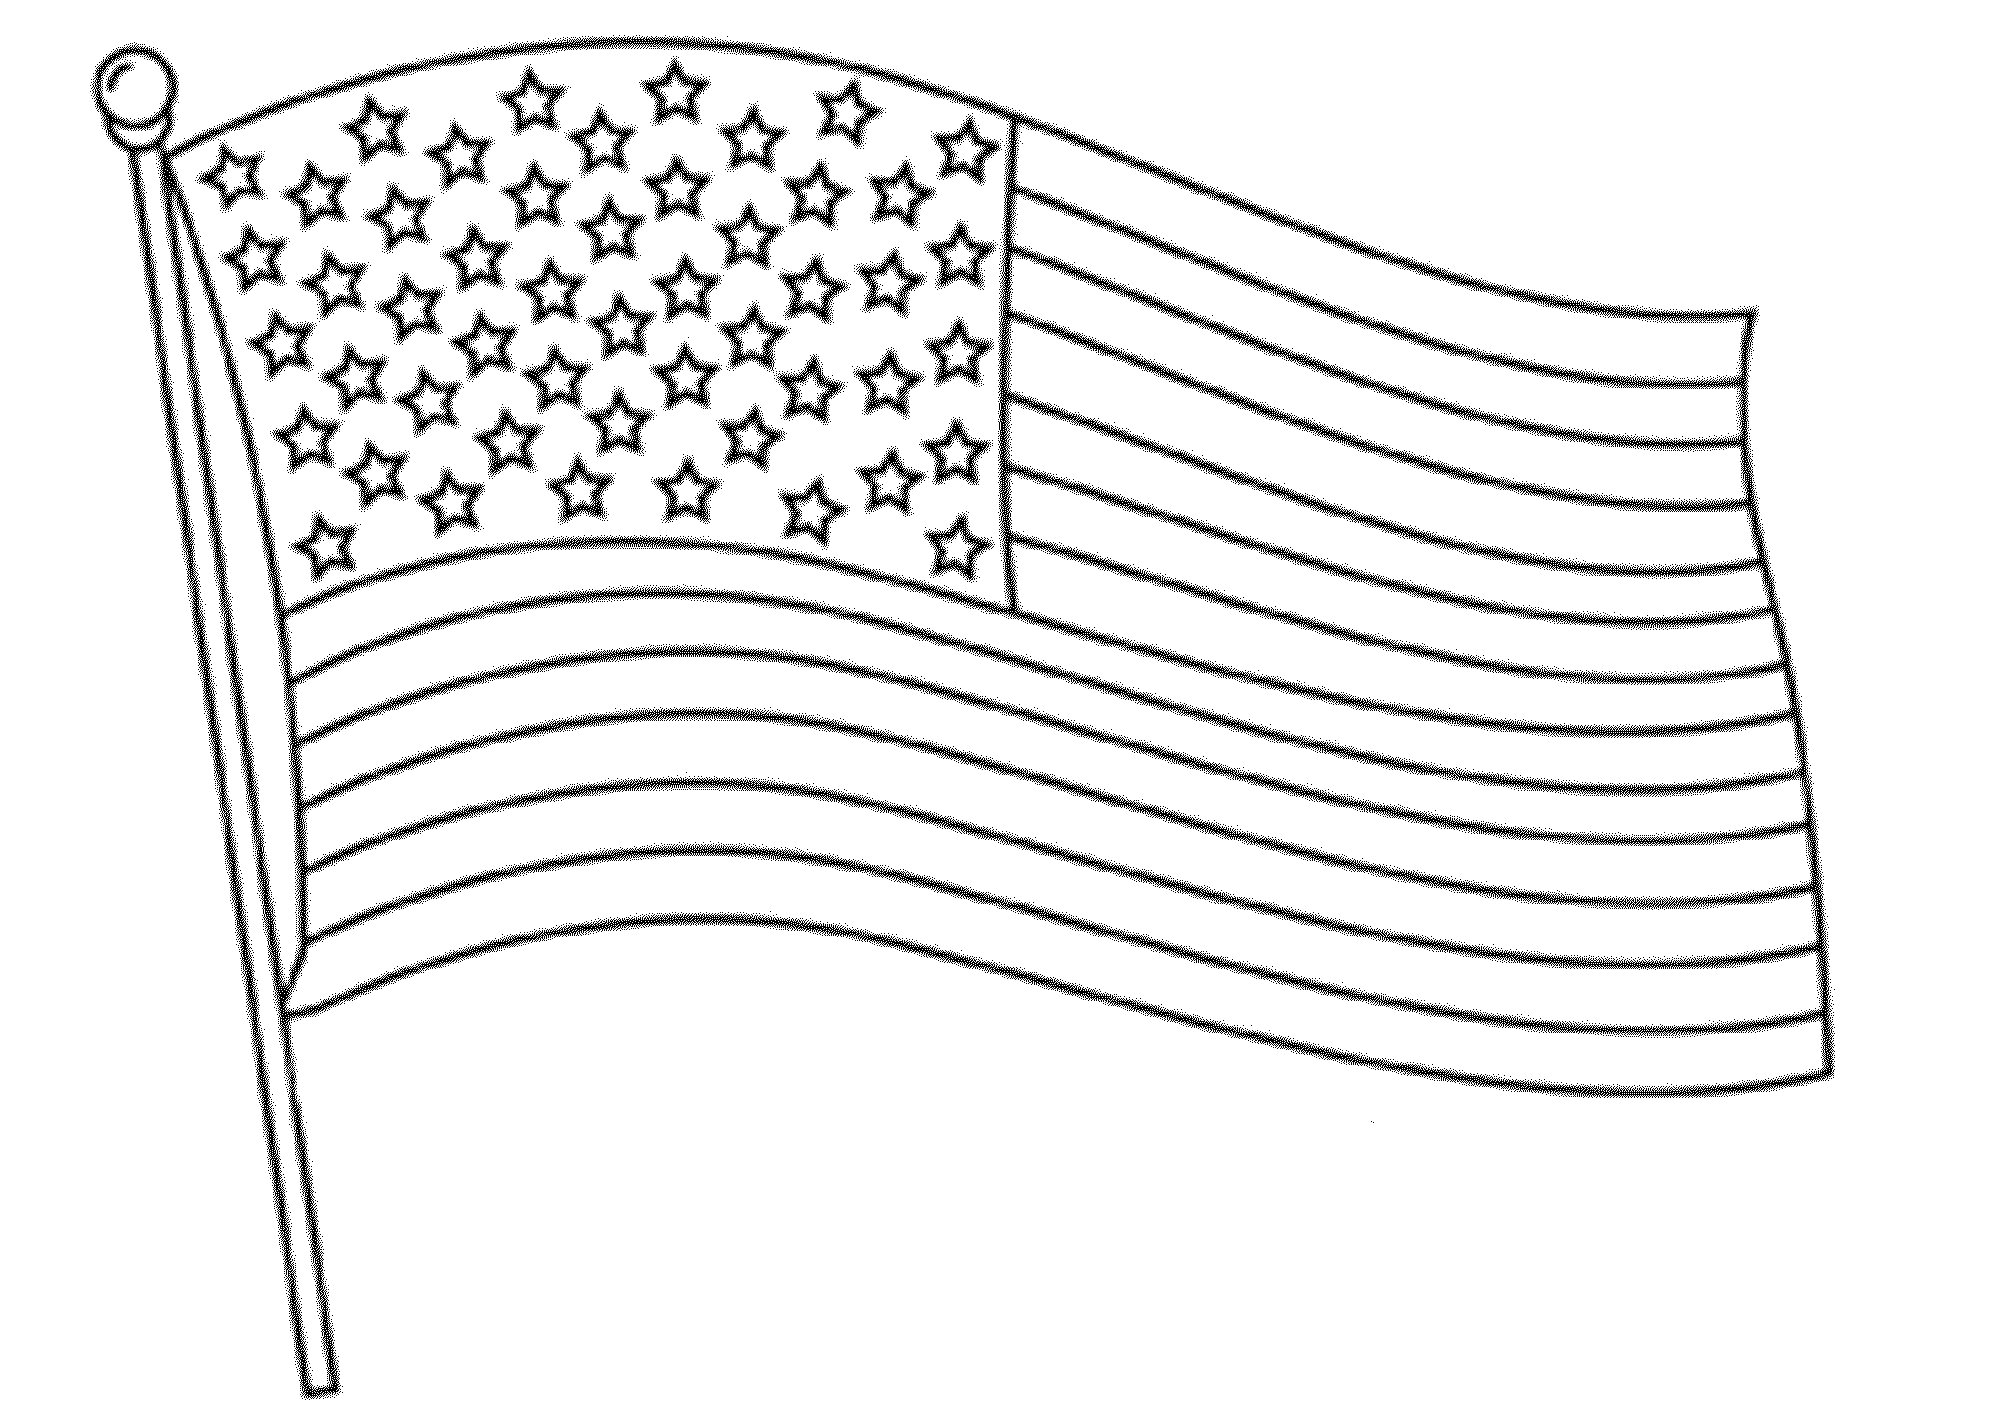 us flag coloring page original american flag coloring page coloring home coloring us page flag